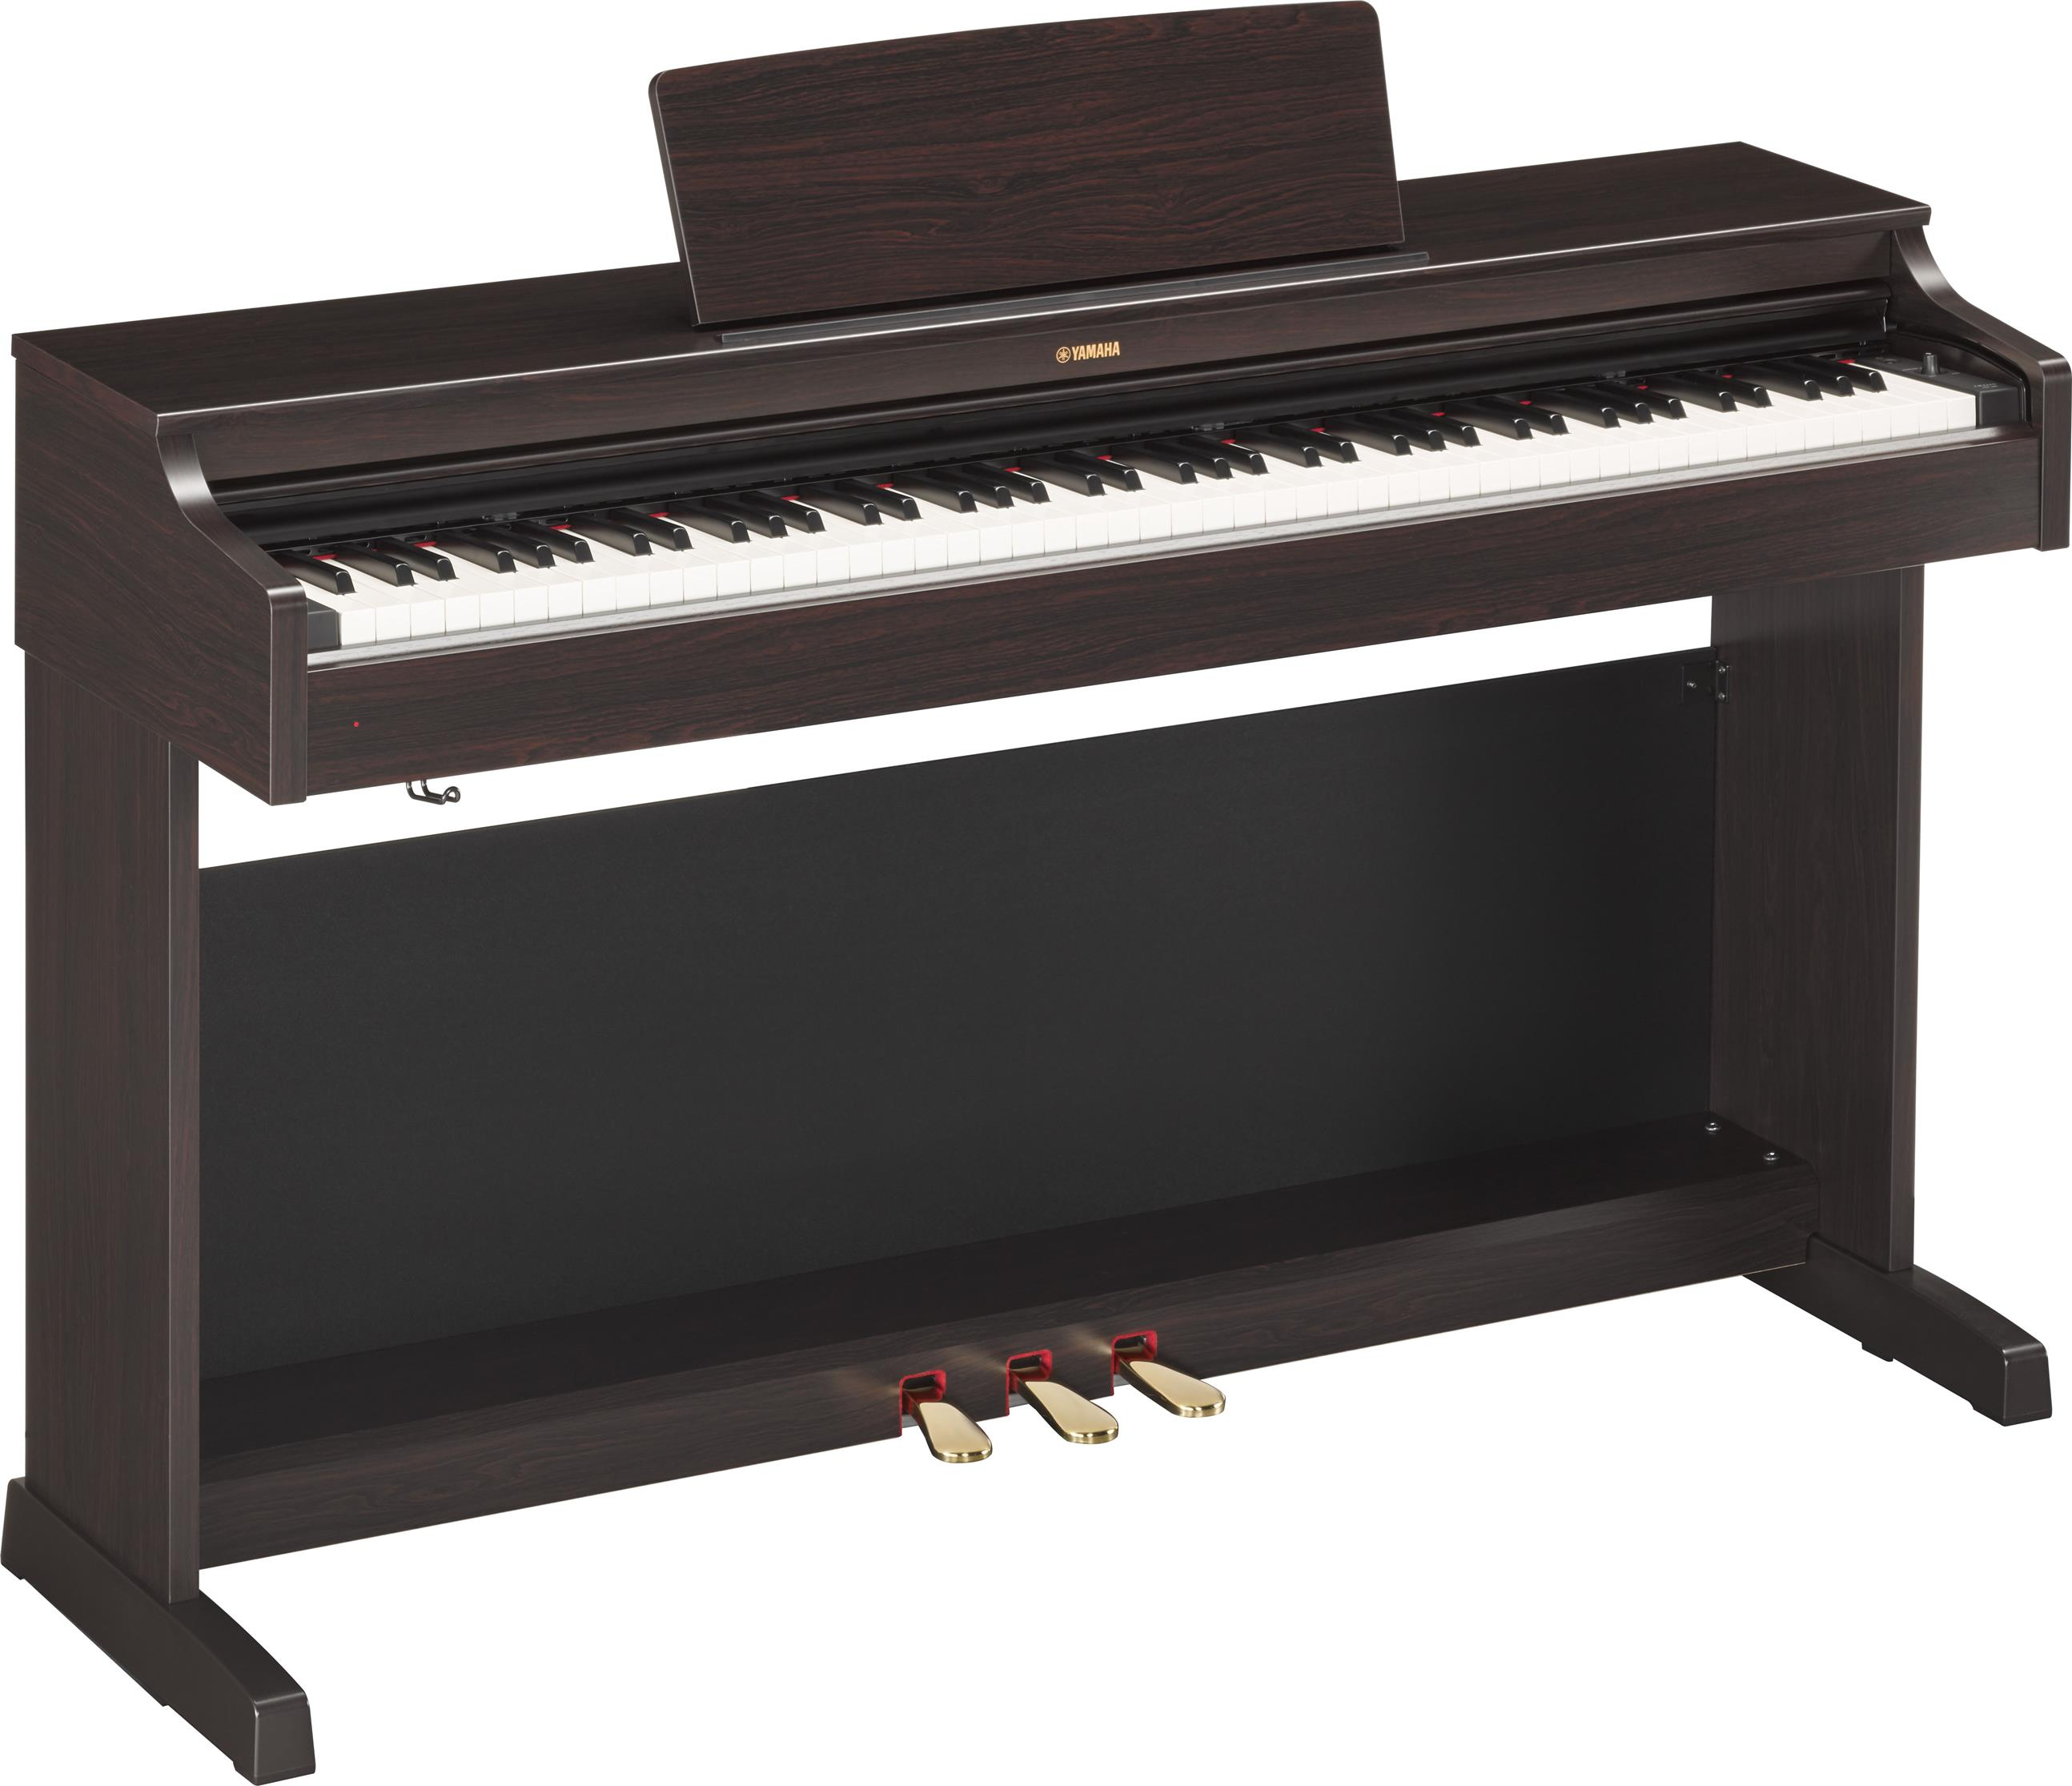 YAMAHA Arius YDP-163 - 88-Key Digital Piano (NEW) - FREE SHIPPING